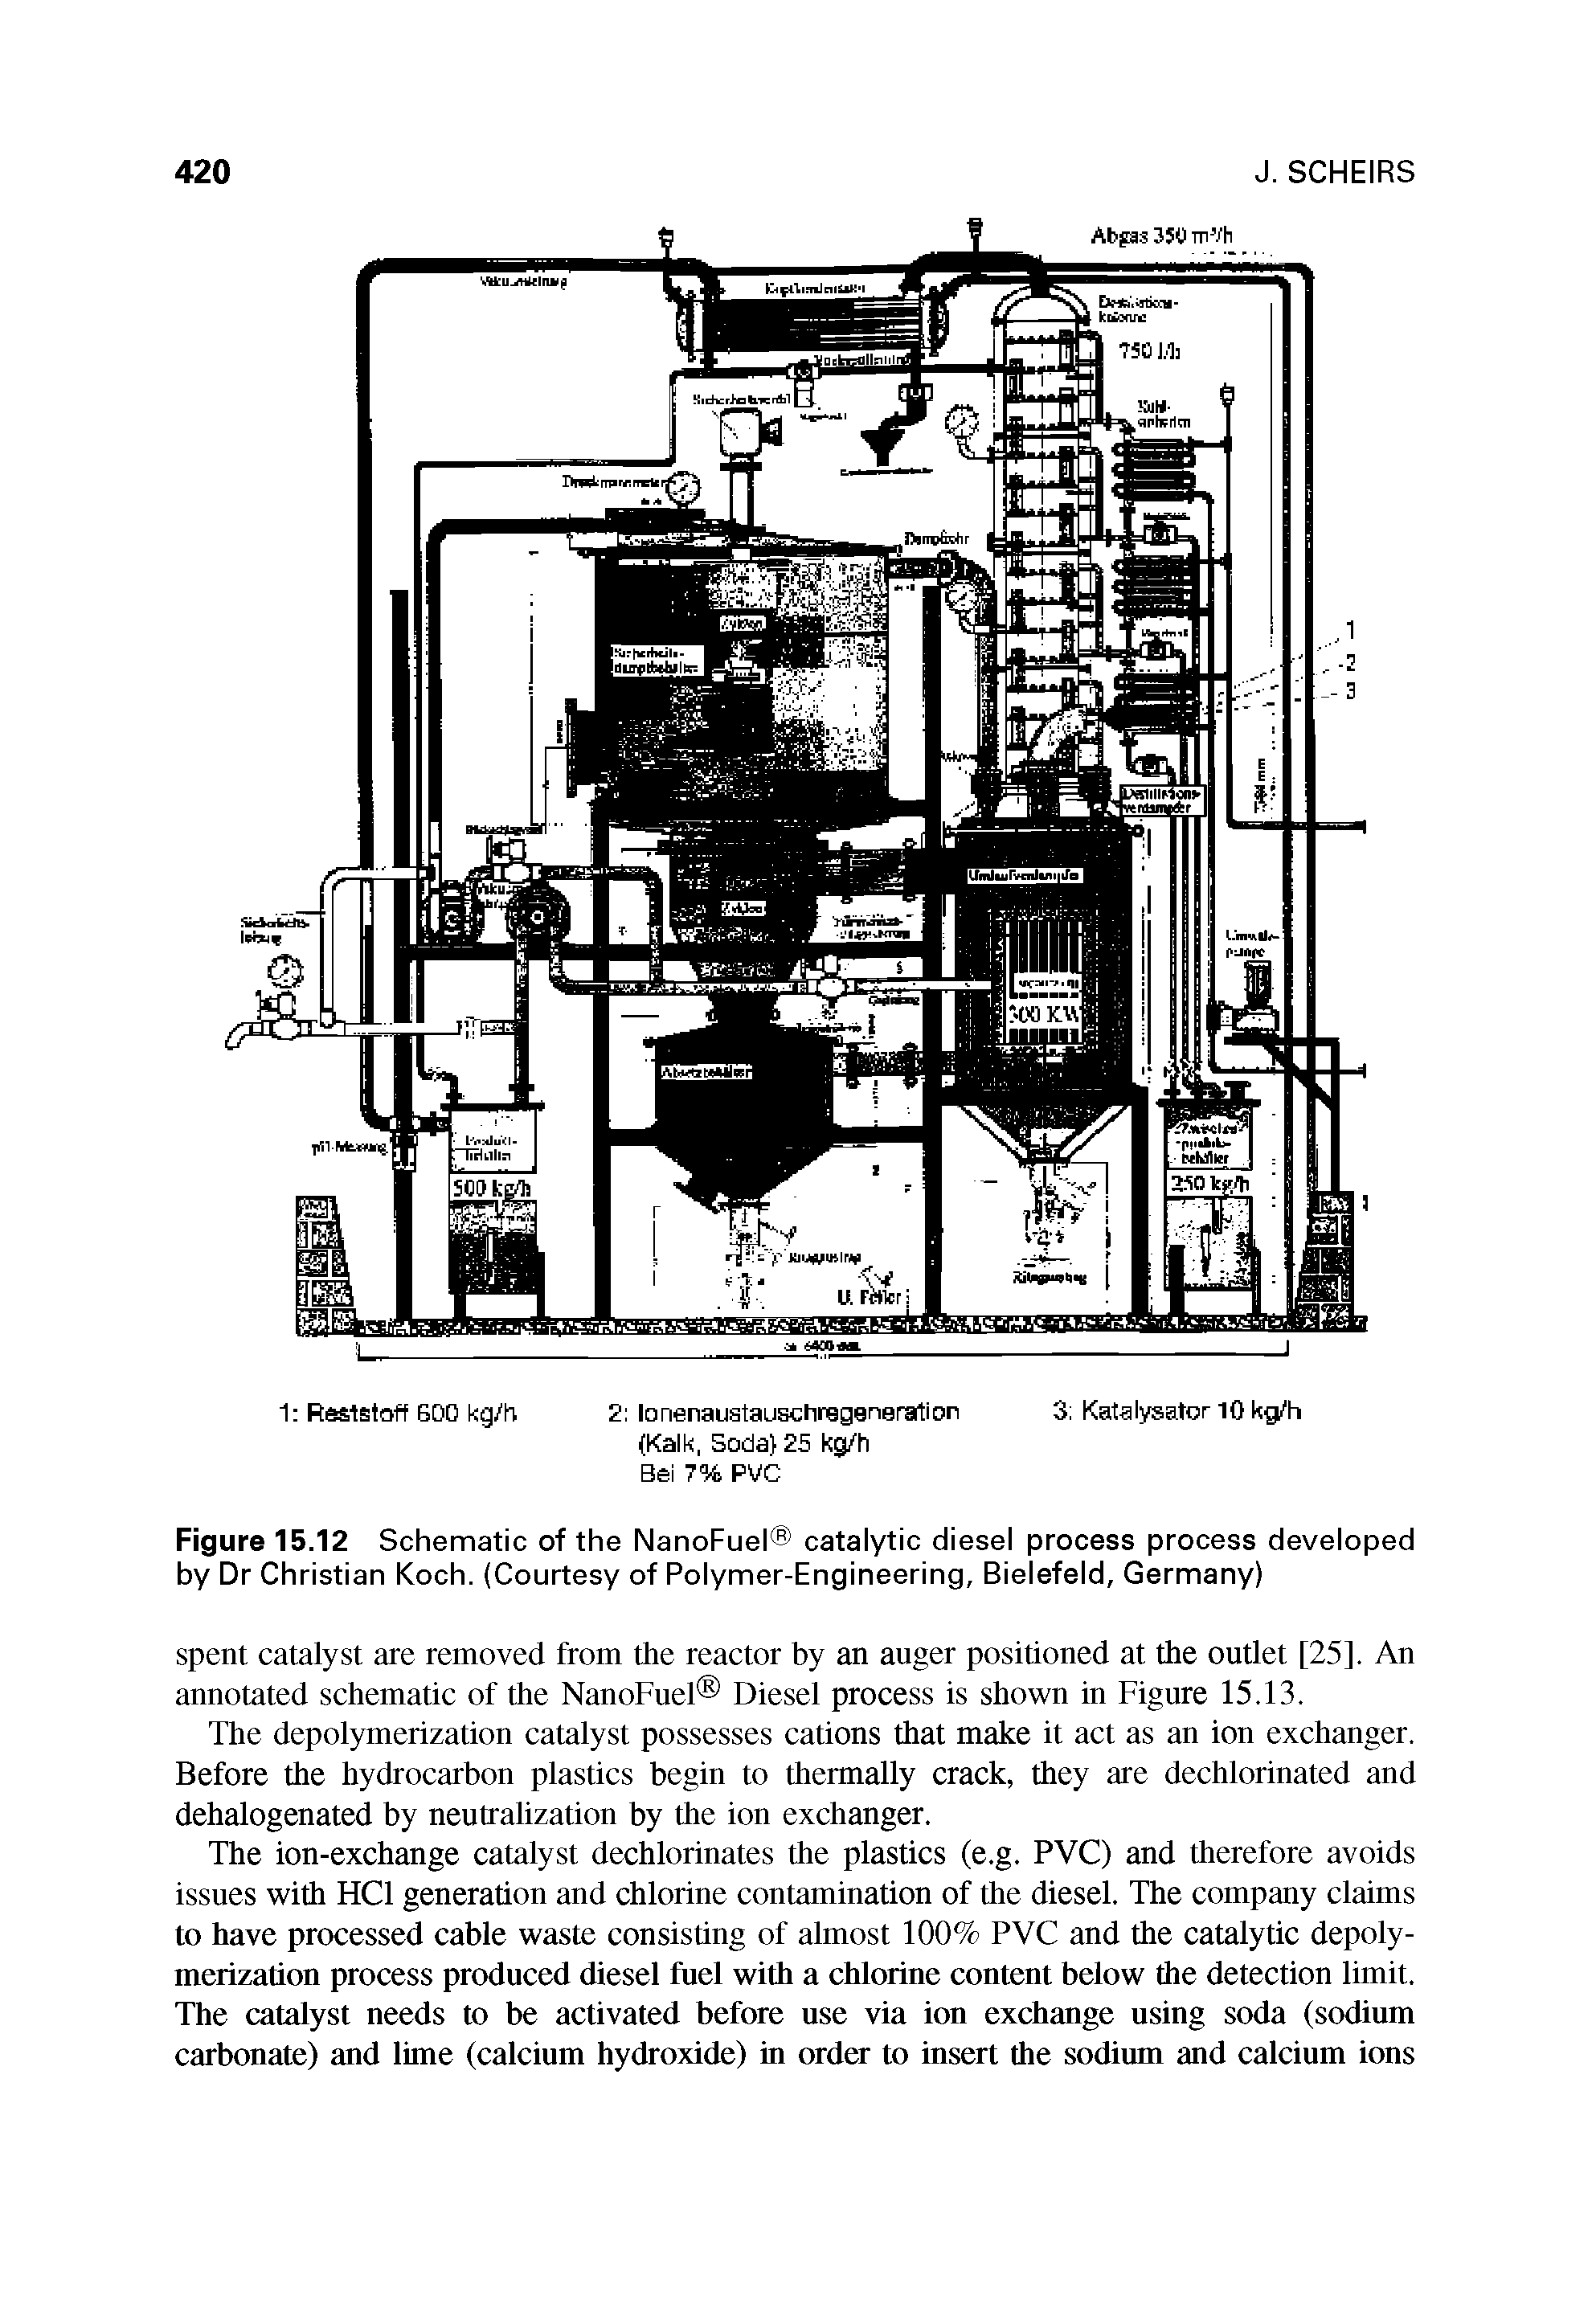 "Figure 15.12 Schematic of the NanoFuel catalytic <a href=""/info/diesel_combustion_processes"">diesel process process</a> developed by Dr Christian Koch. (Courtesy of <a href=""/info/engineering_polymers"">Polymer-Engineering</a>, Bielefeld, Germany)"